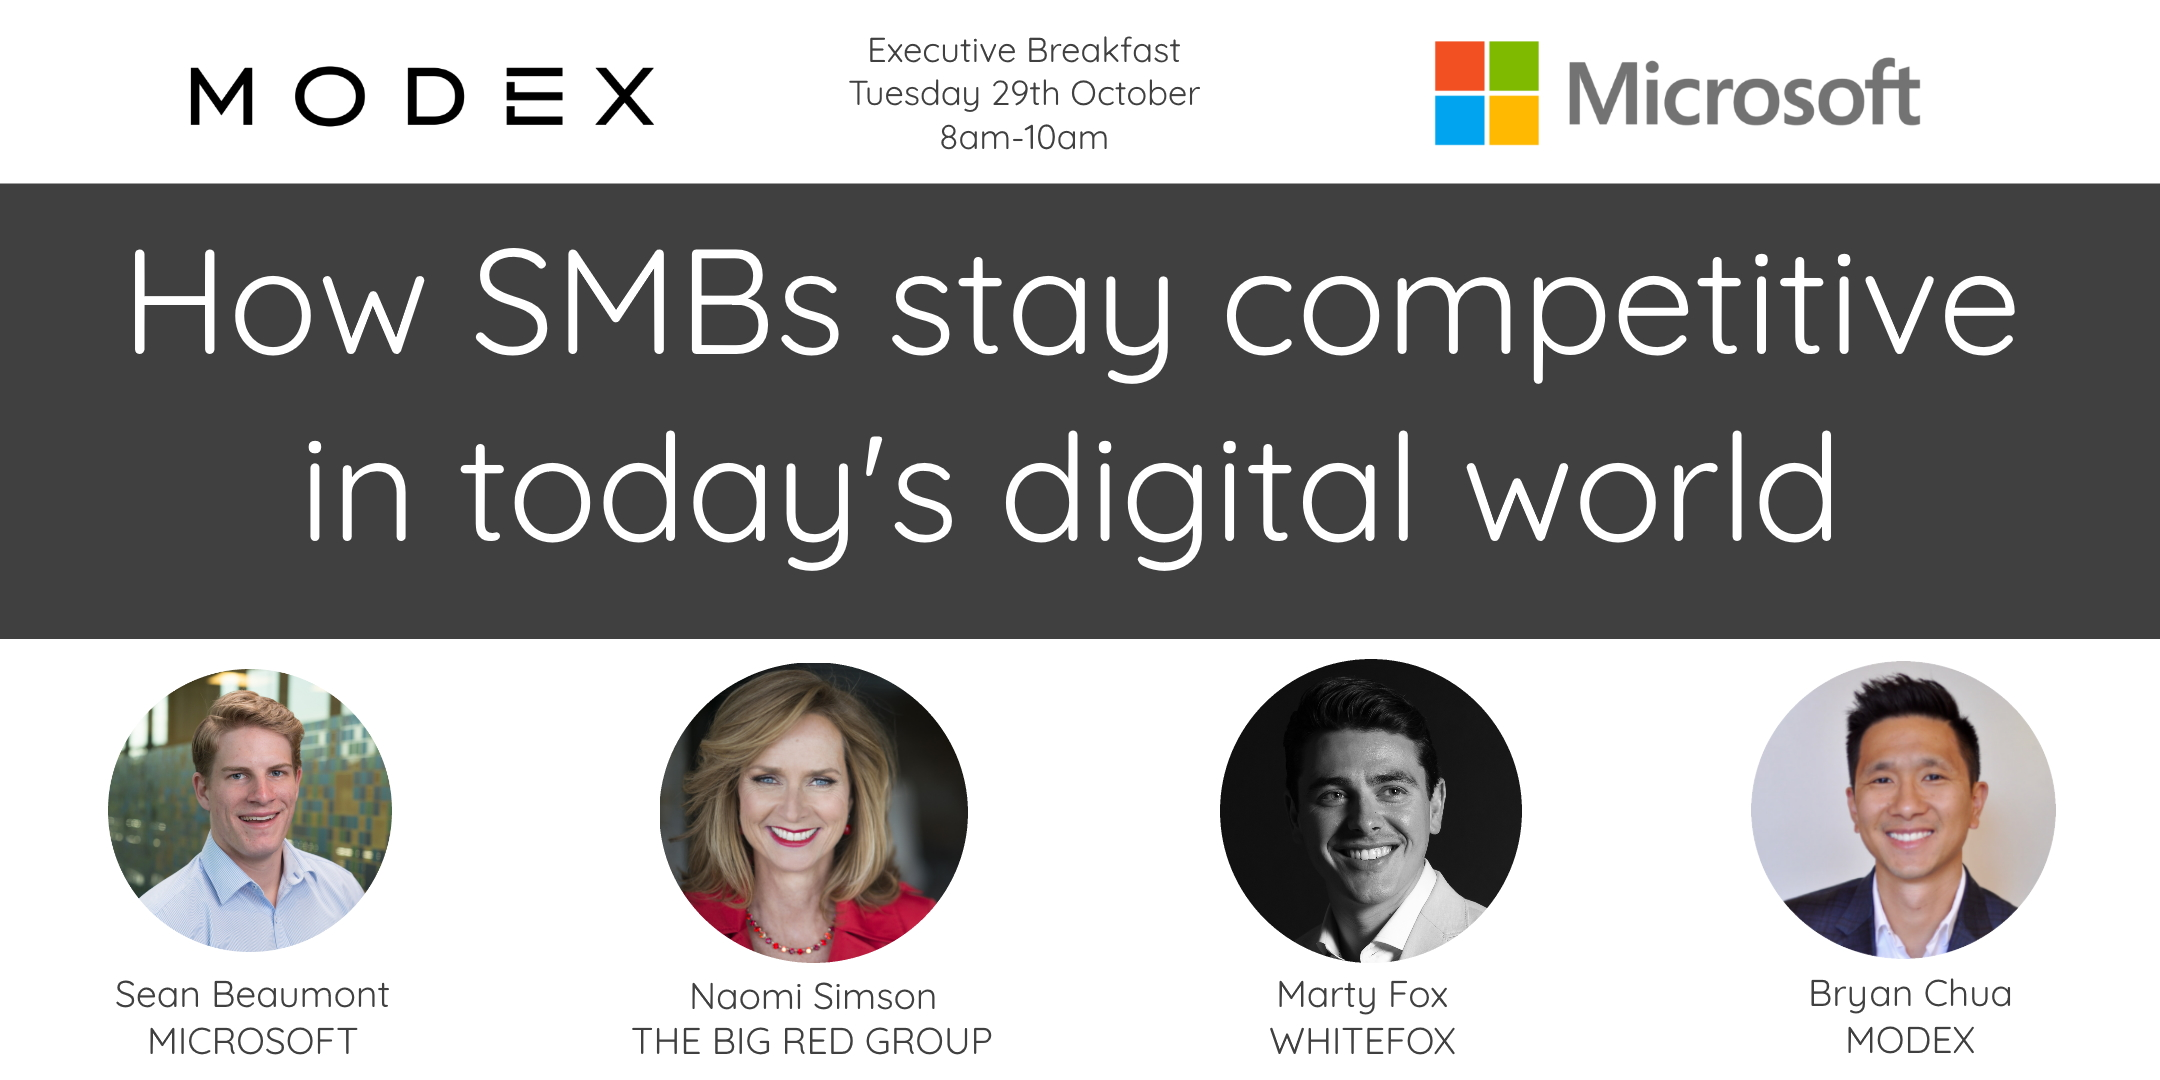 MODEX Event Banner - How SMBs stay competitive in today's digital world